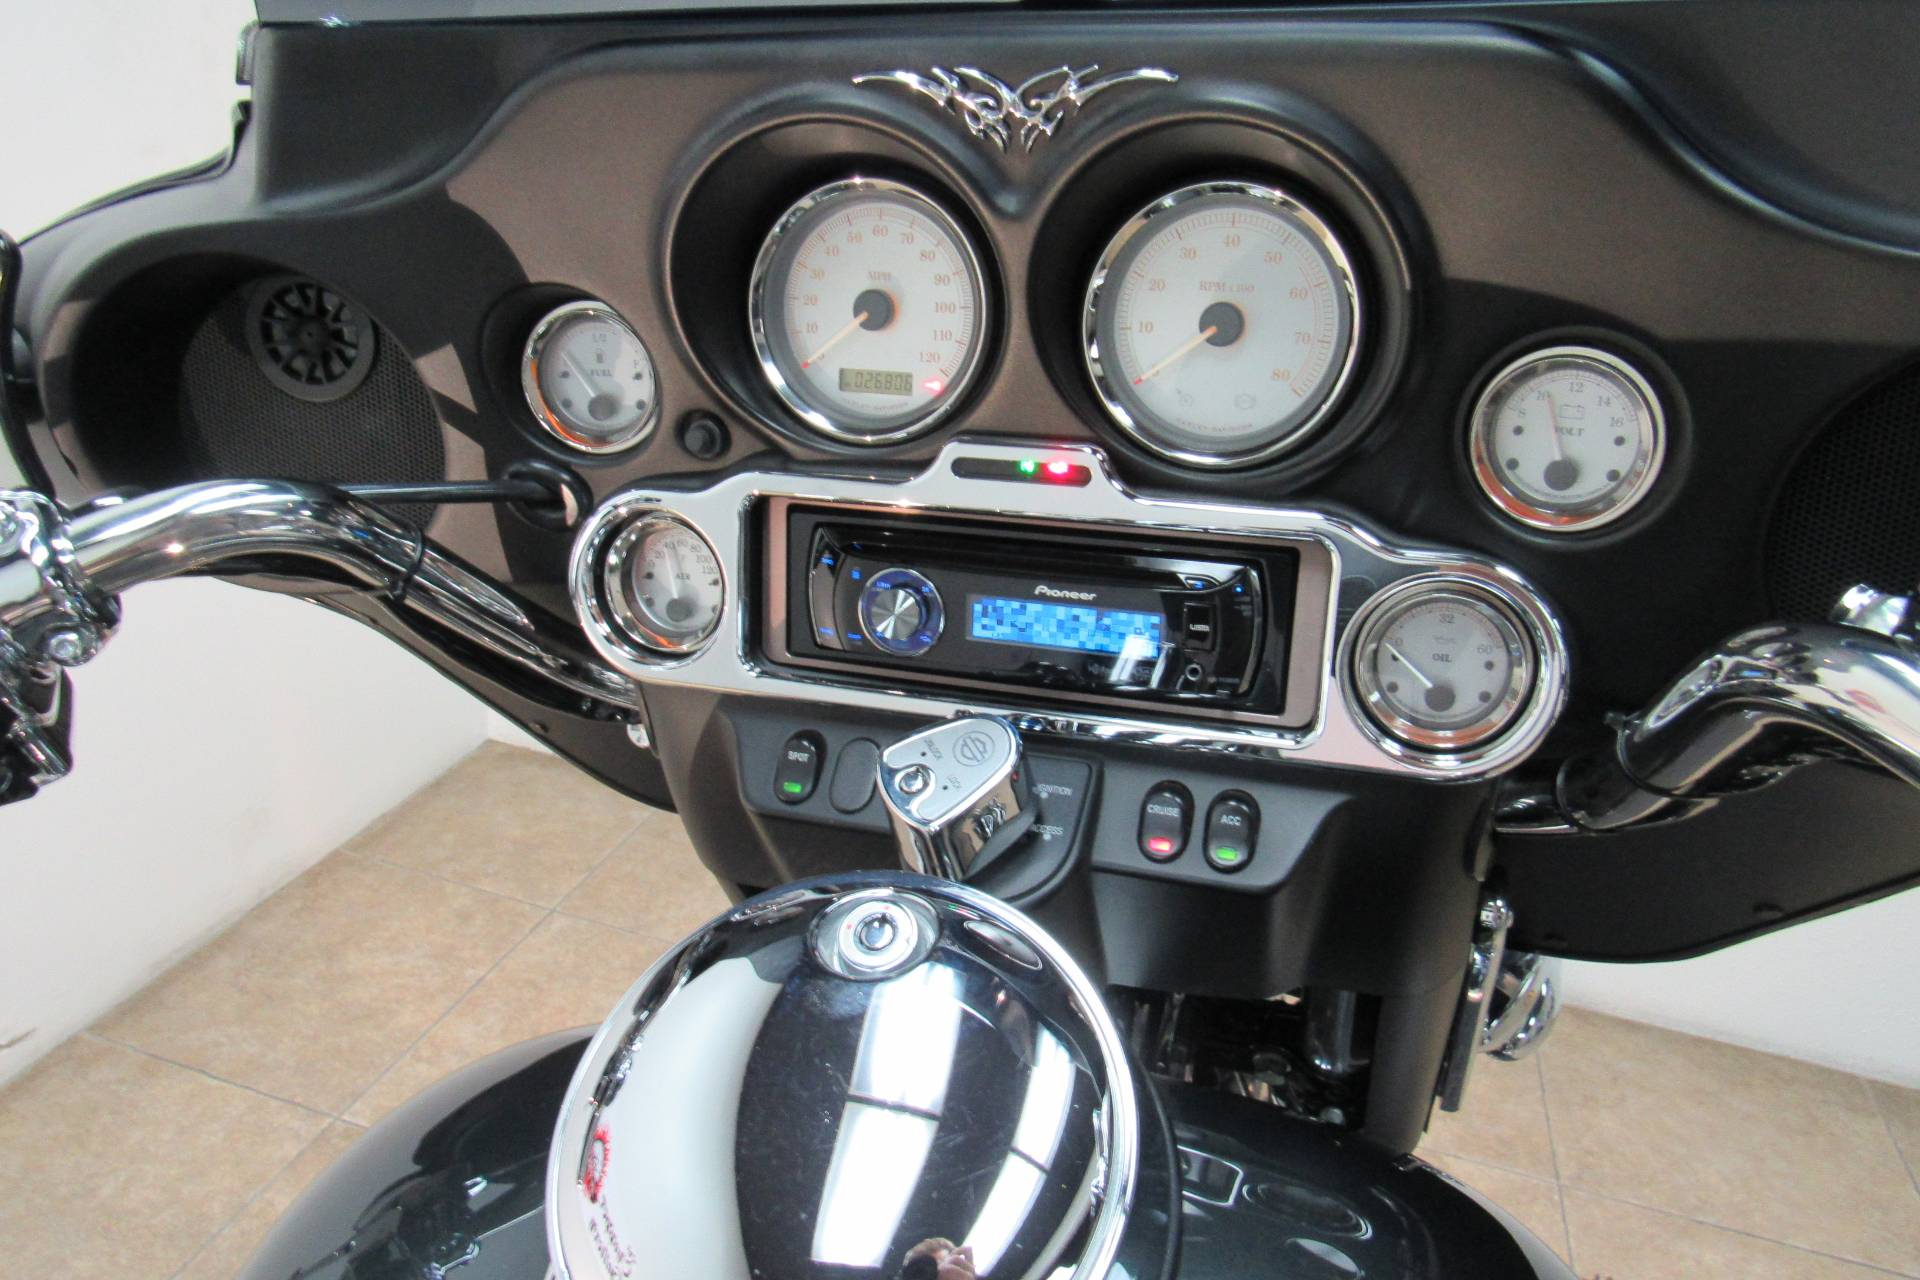 2009 Harley-Davidson Street Glide® in Temecula, California - Photo 15